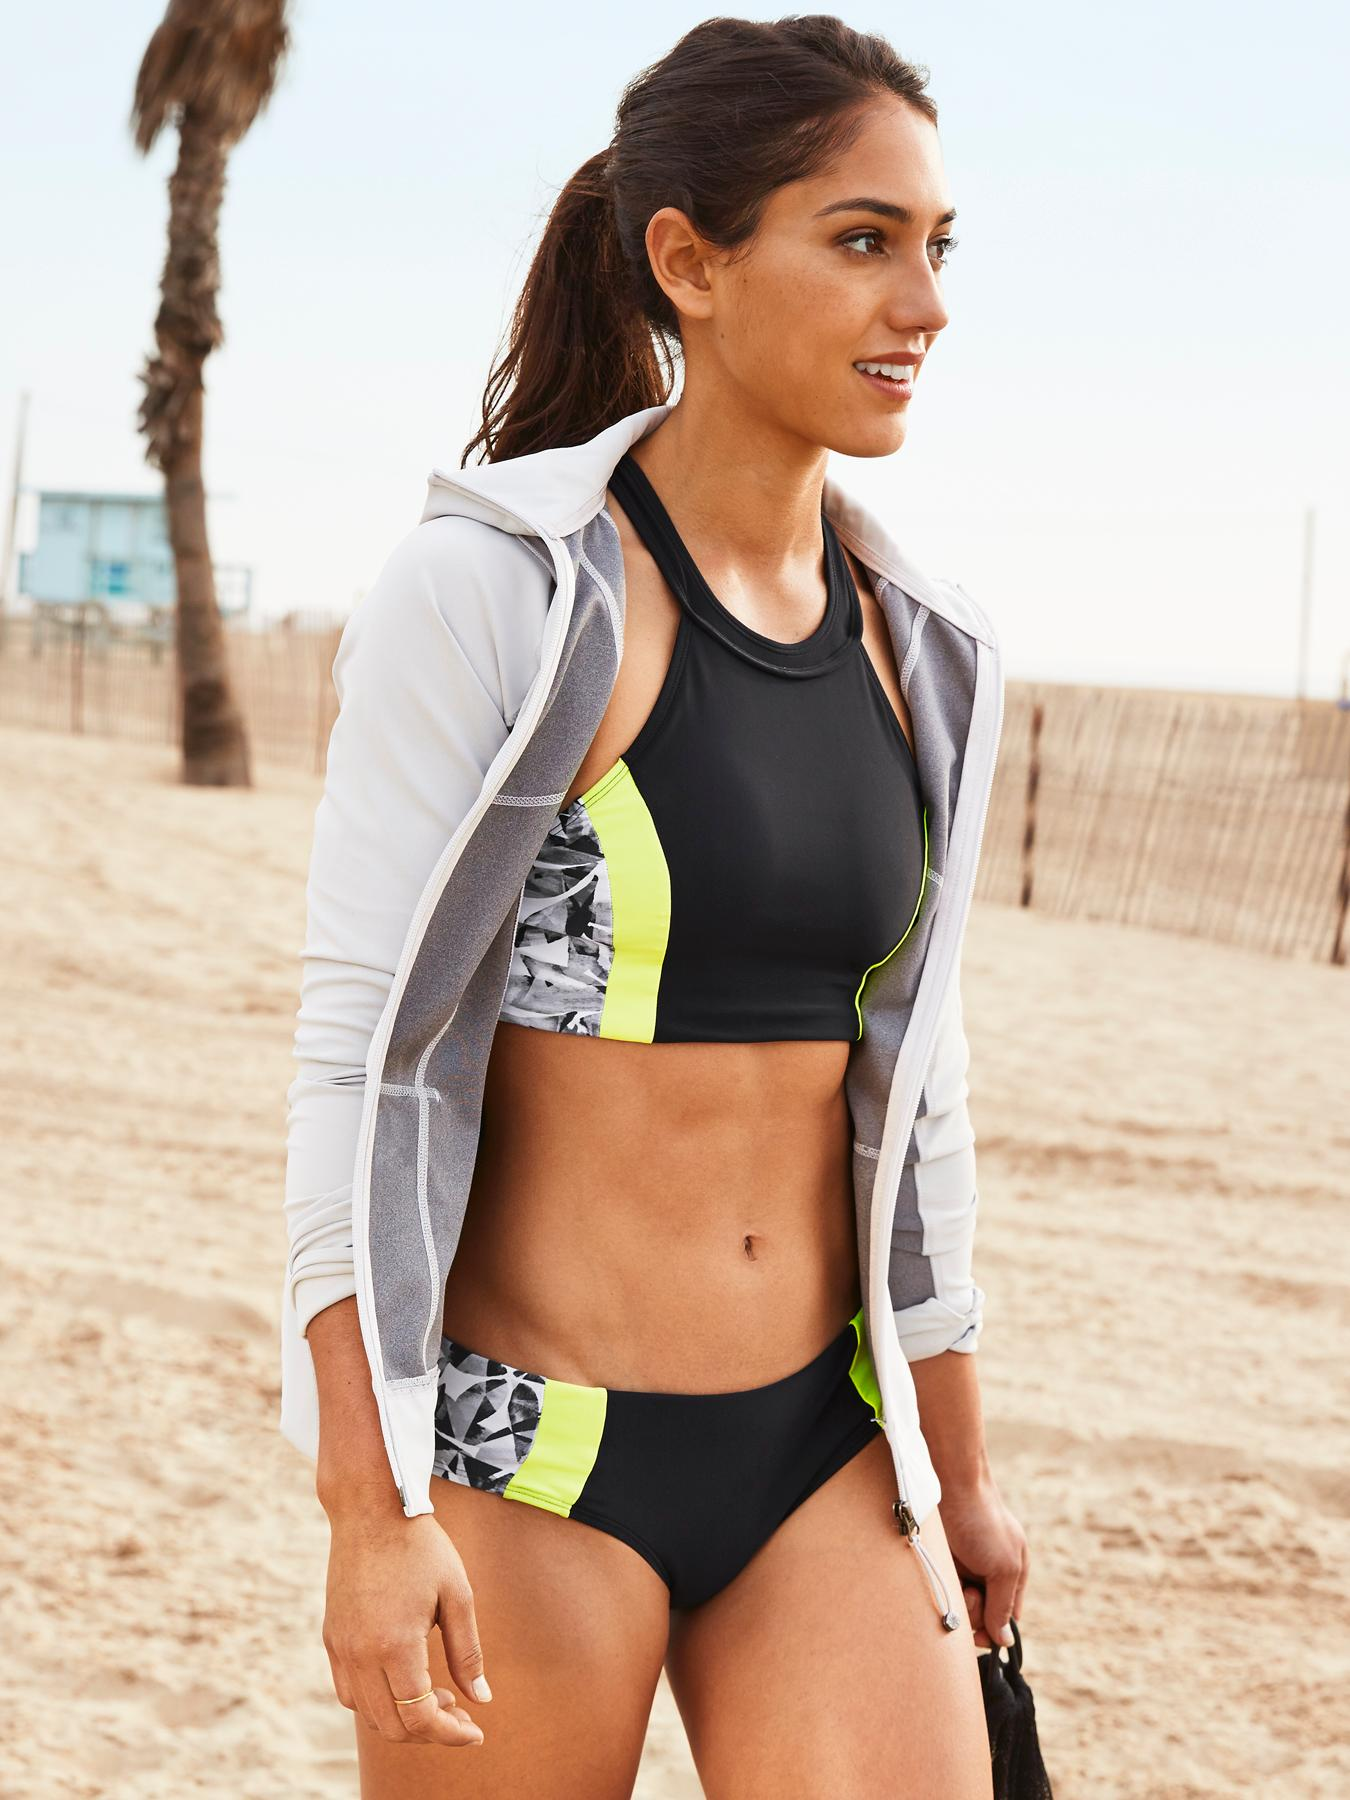 Allison-Stokke:-Athleta-apparel-06.jpg